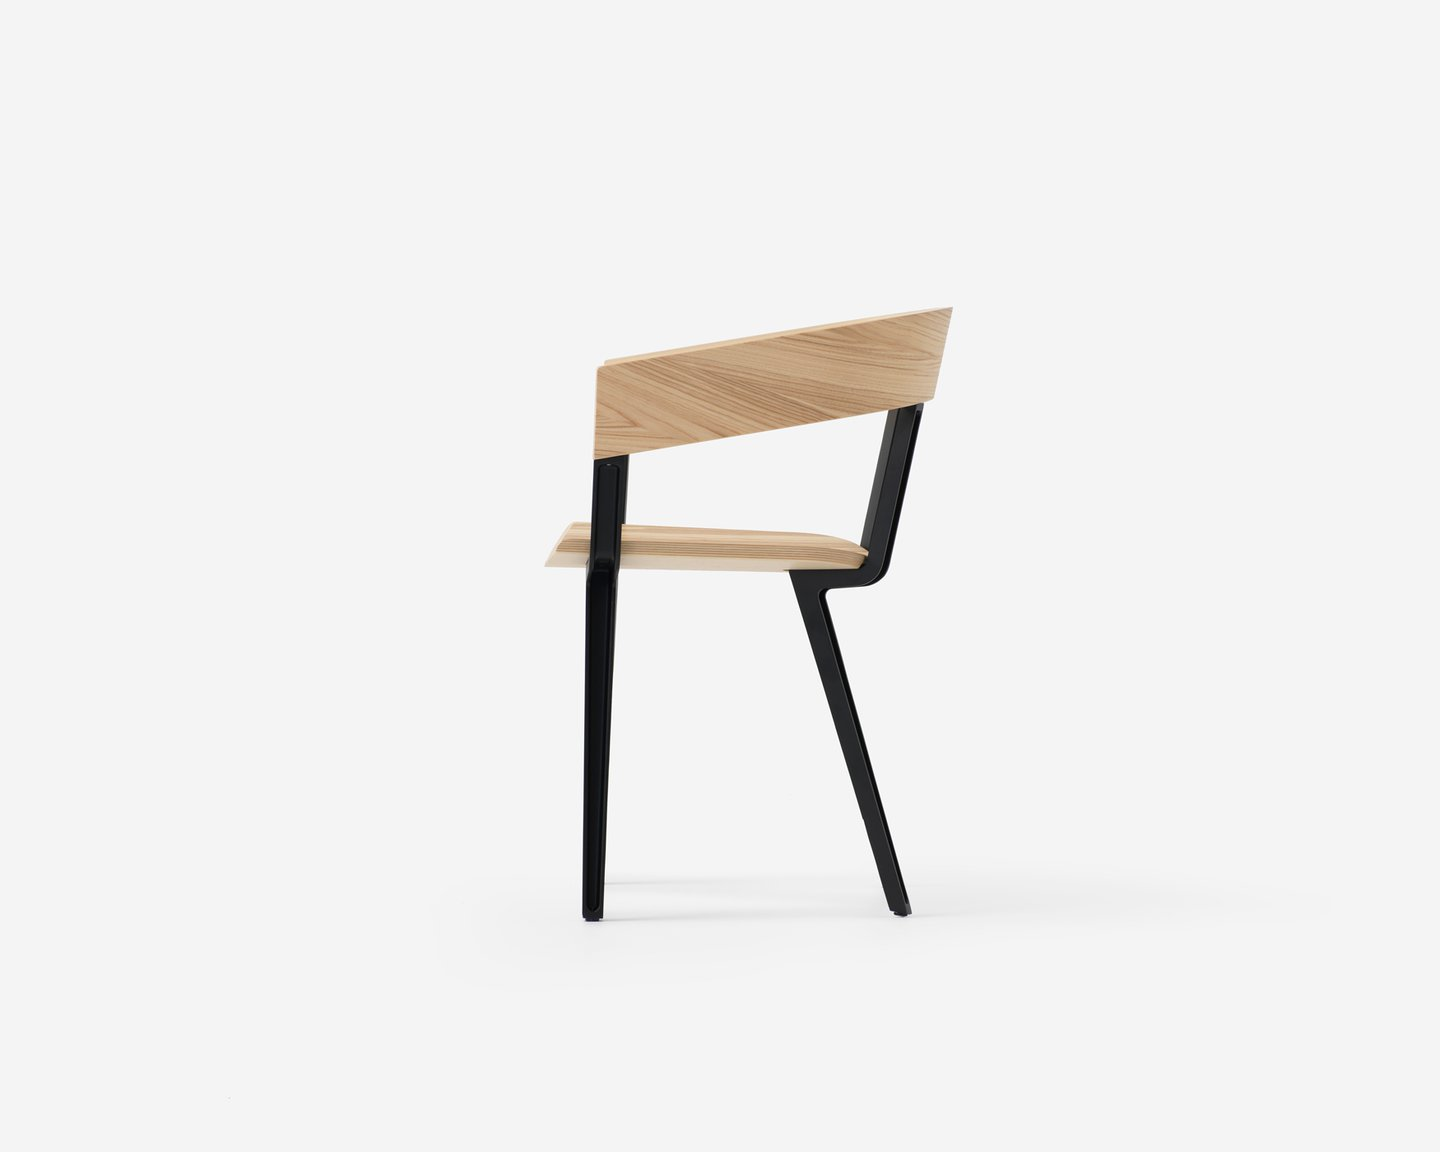 Image: uploads/2017_03/Resident-Odin-Chair-by-Jamie-Mclellan-1.jpg